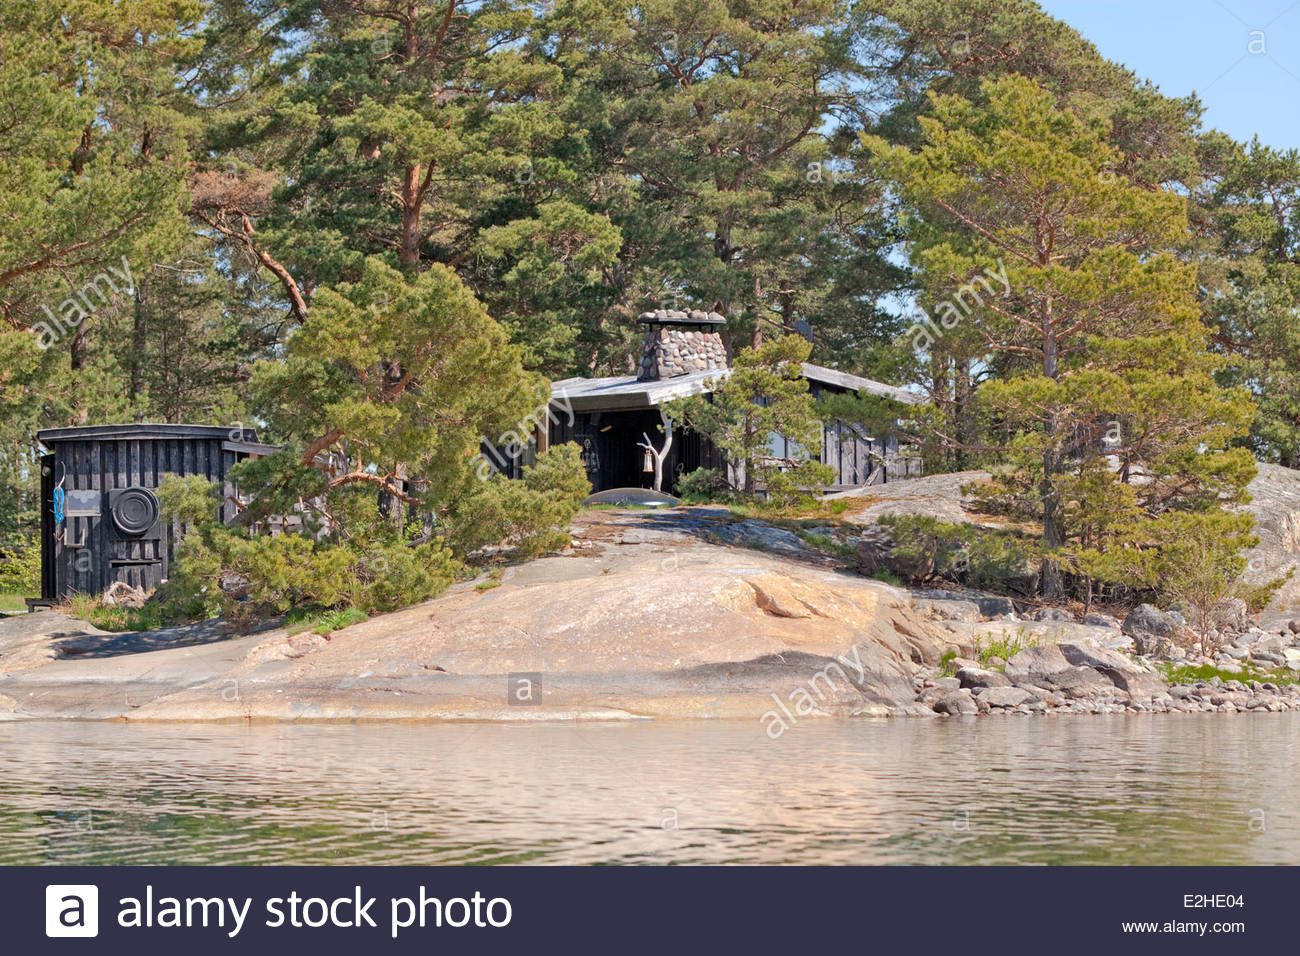 Sunny day in the archipelago of Turku - Stock Image